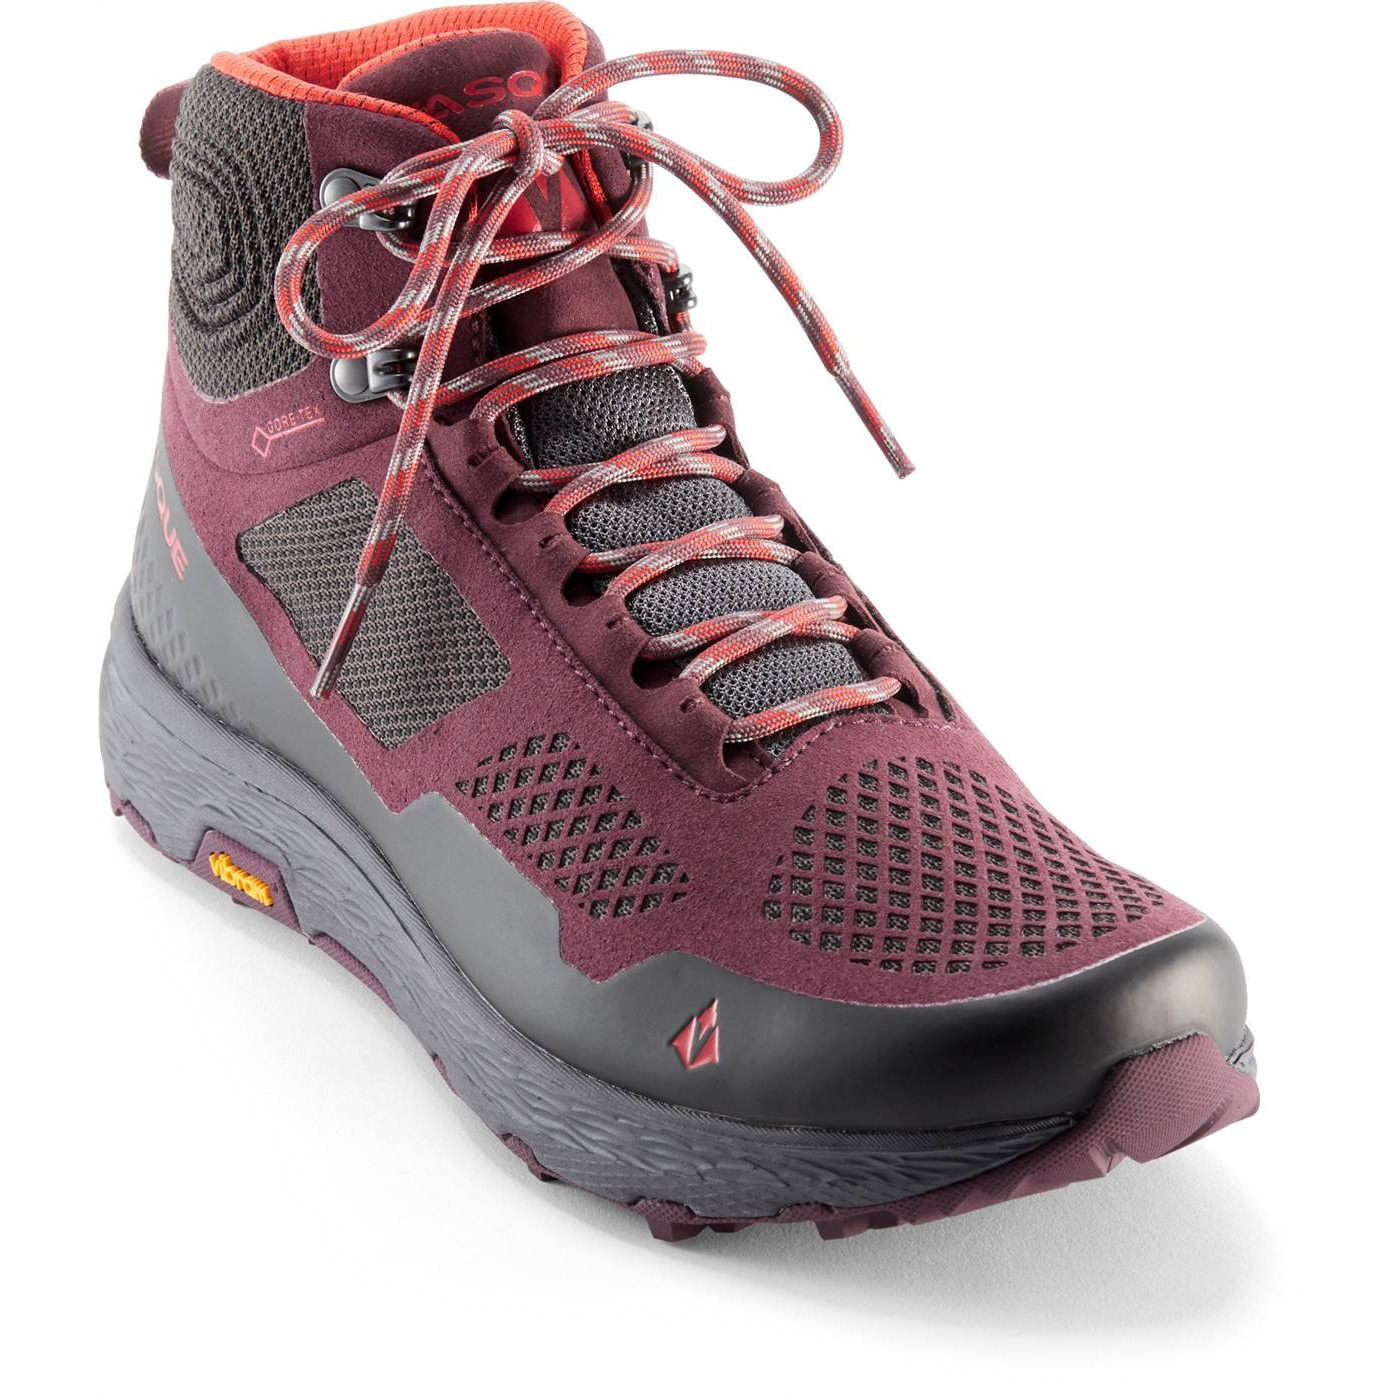 Breeze LT GTX Boot - Women's